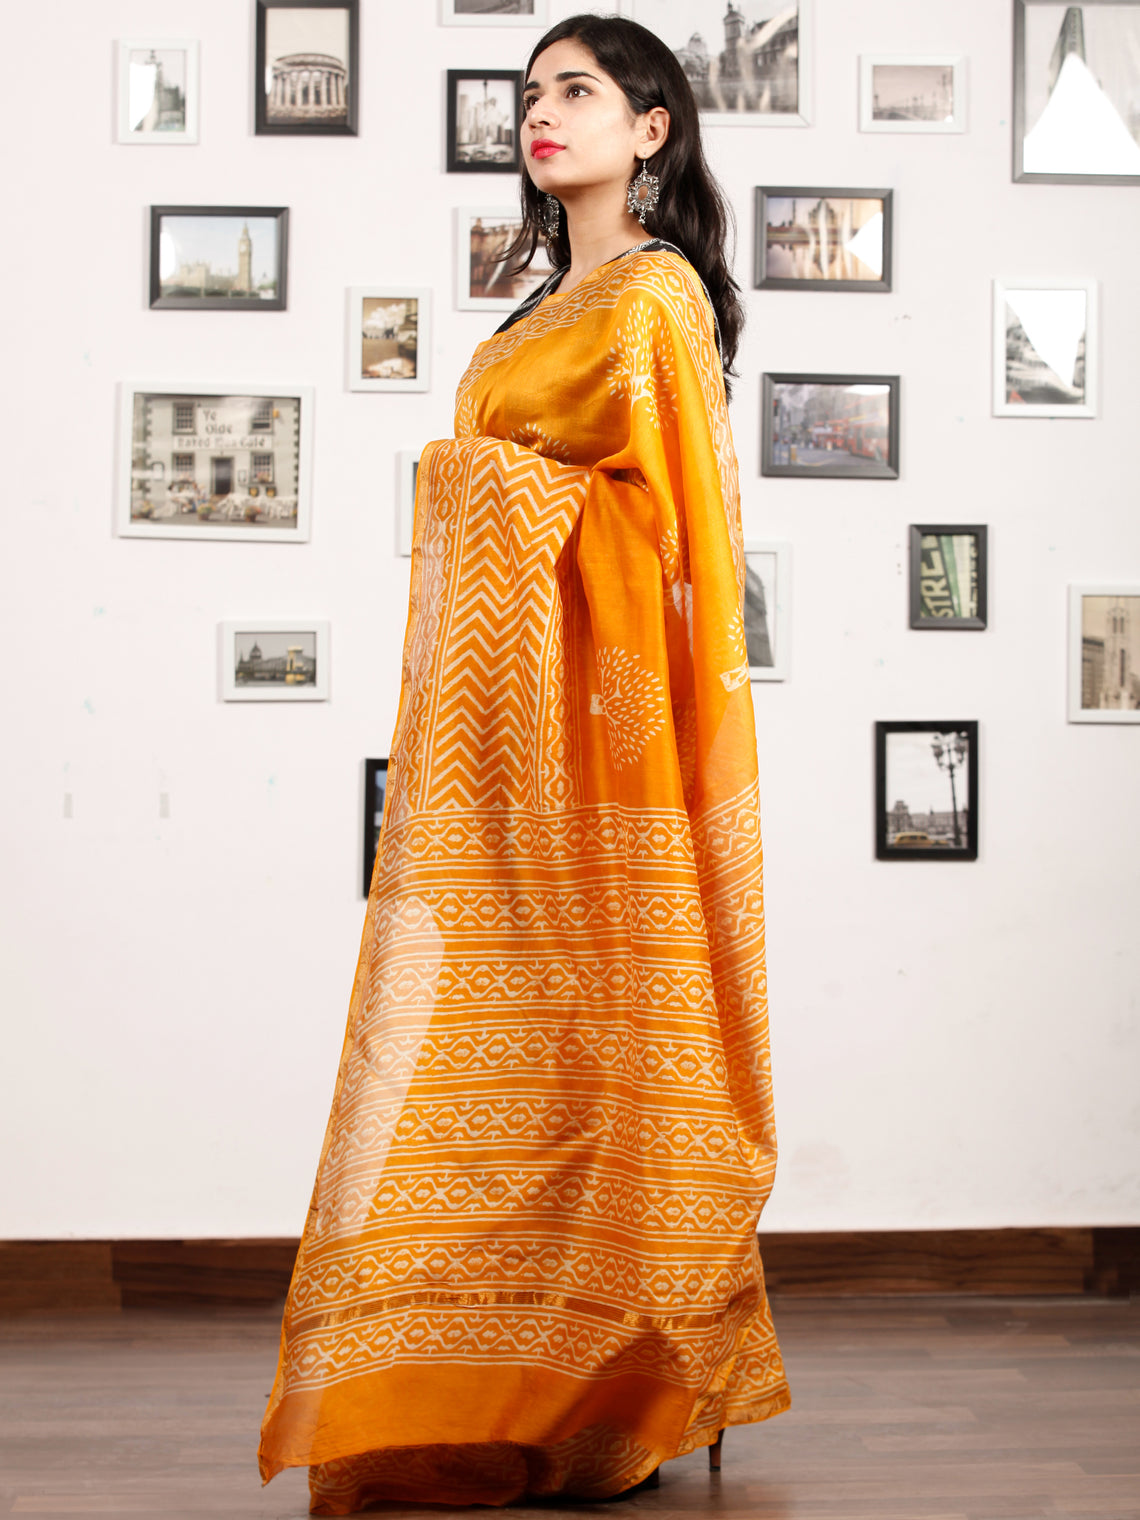 Golden Yellow Ivory Chanderi Silk Hand Block Printed Saree With Zari Border - S031703189